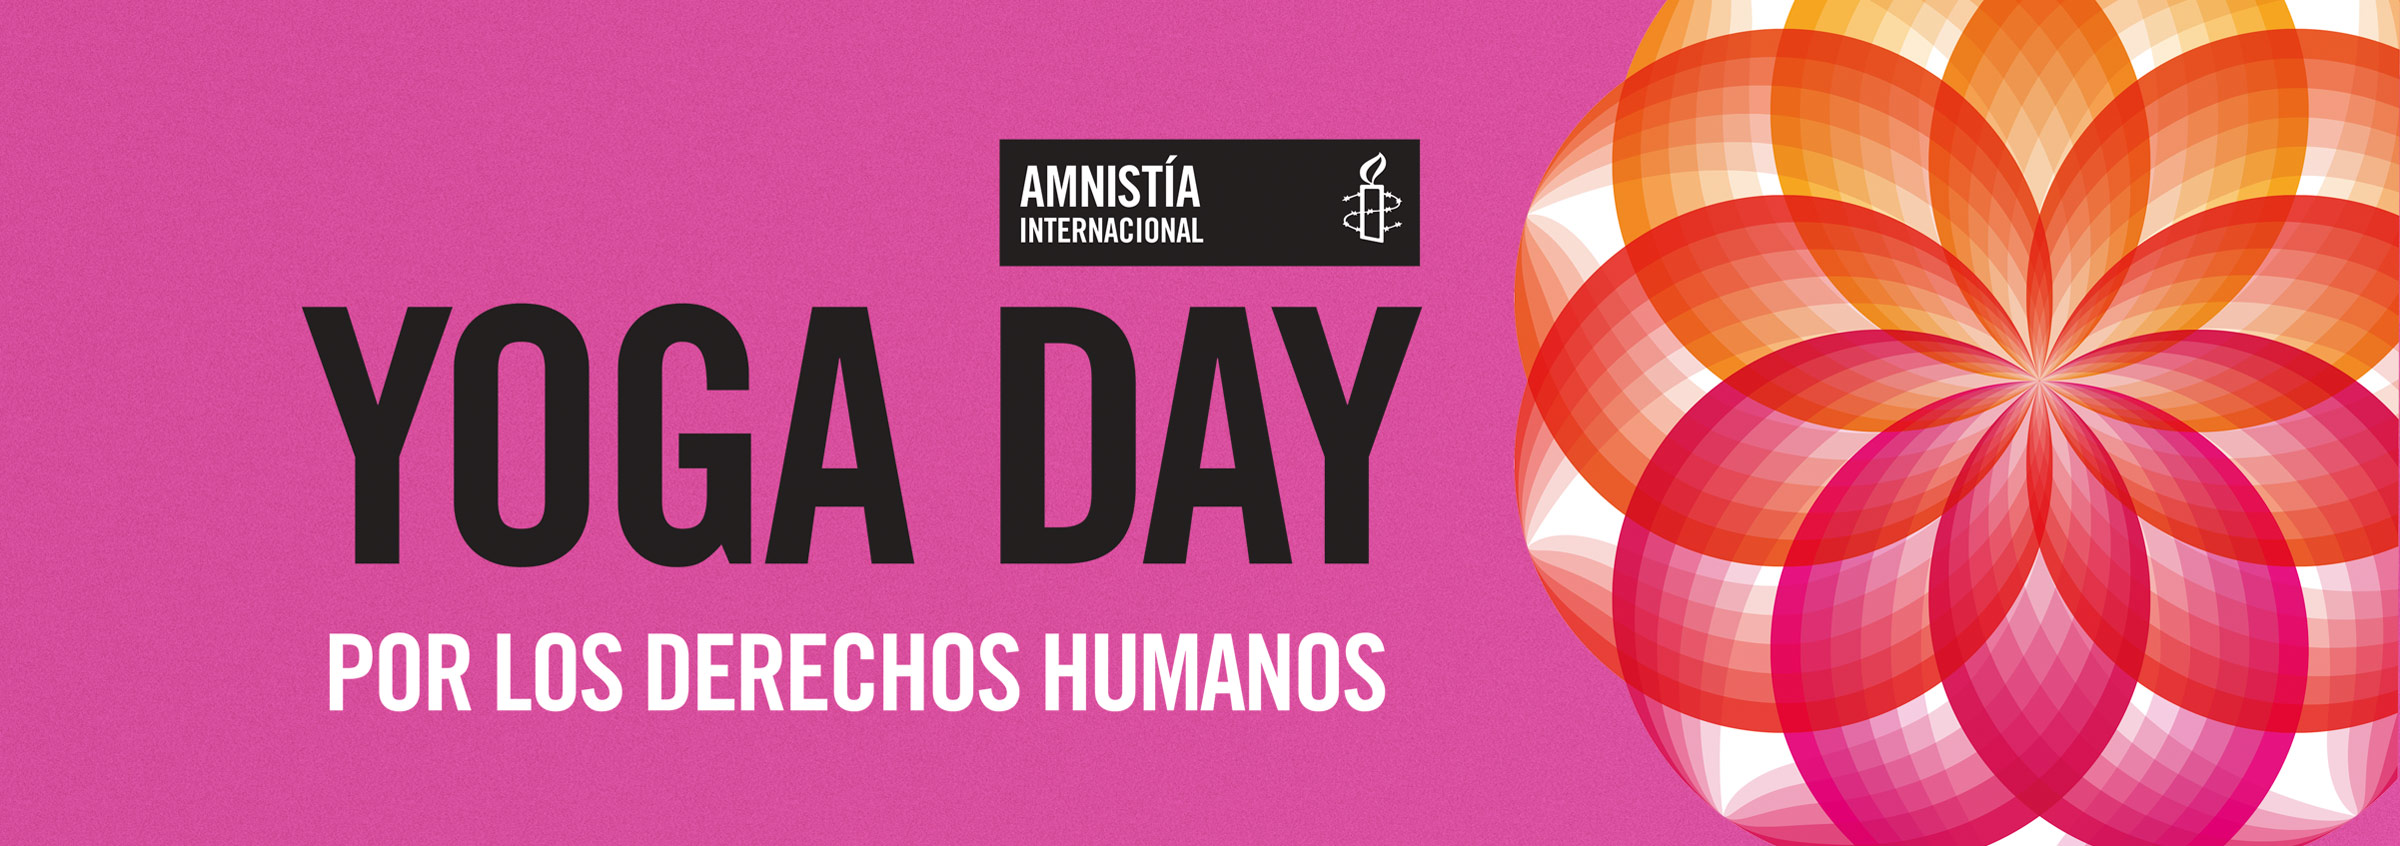 Amnistia Internacional Yoga Day H2 - AMNISTIA INTERNACIONAL // YOGA DAY